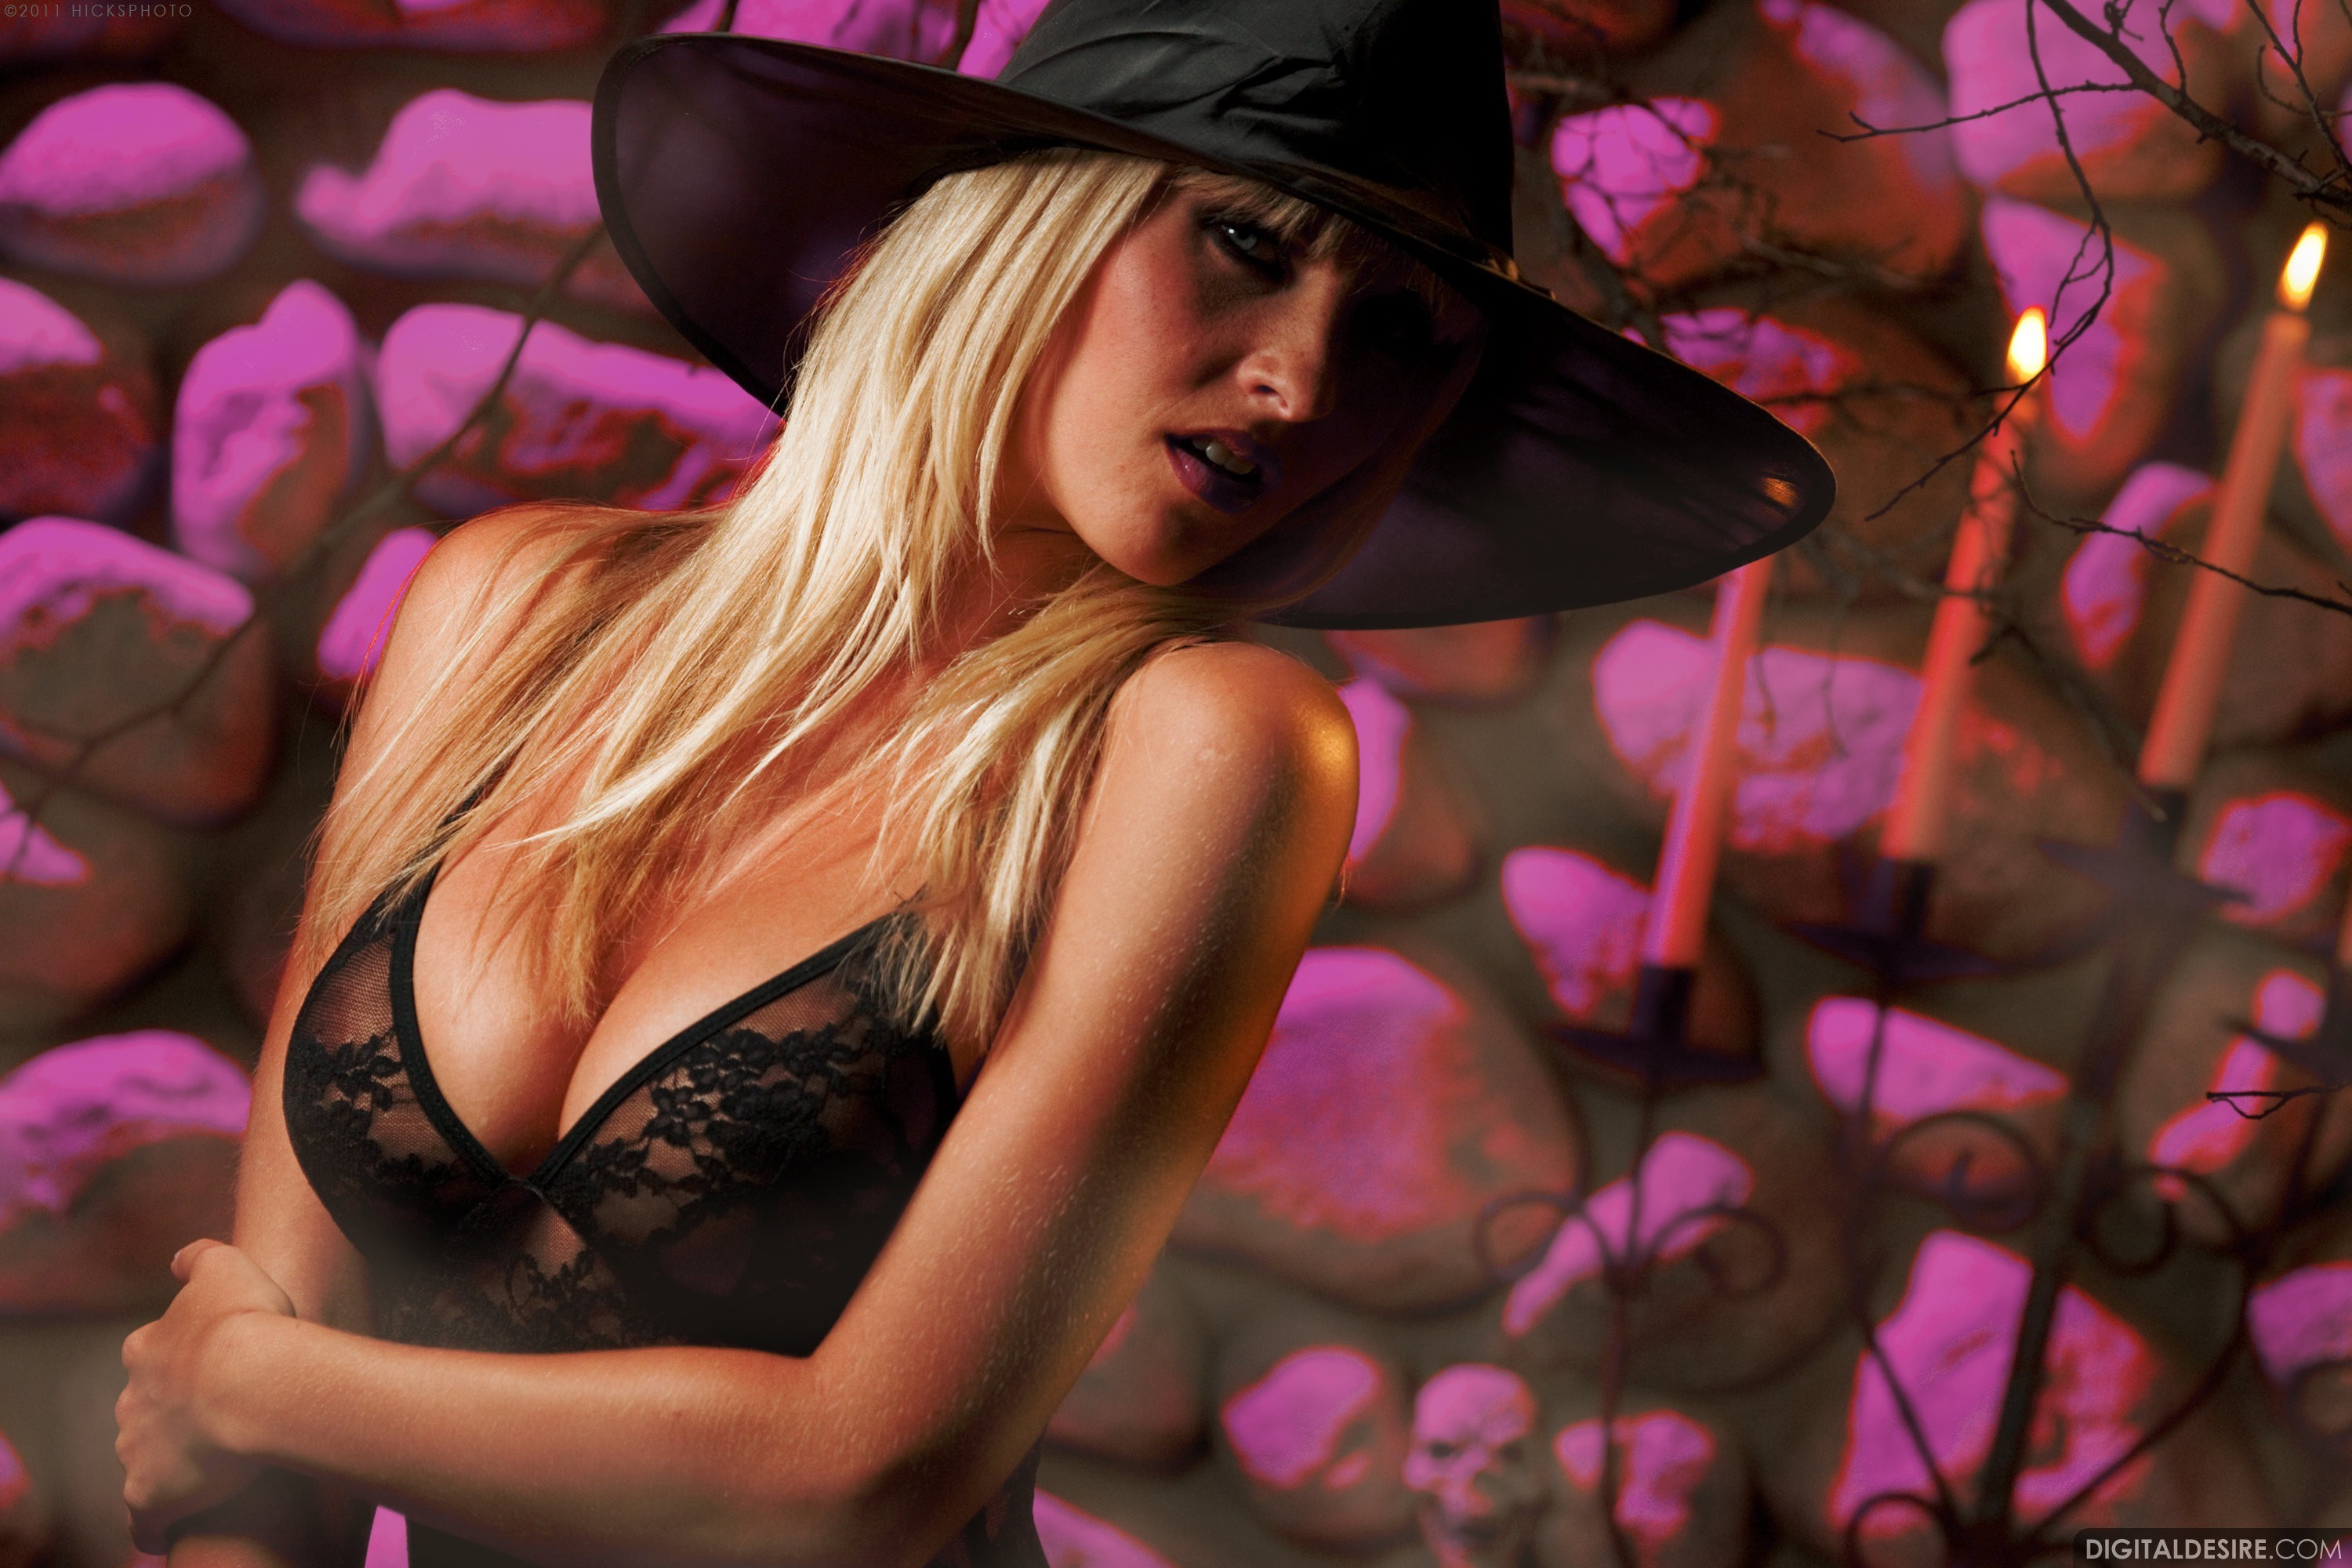 black woman Candles hats Halloween blondes HD Wallpaper